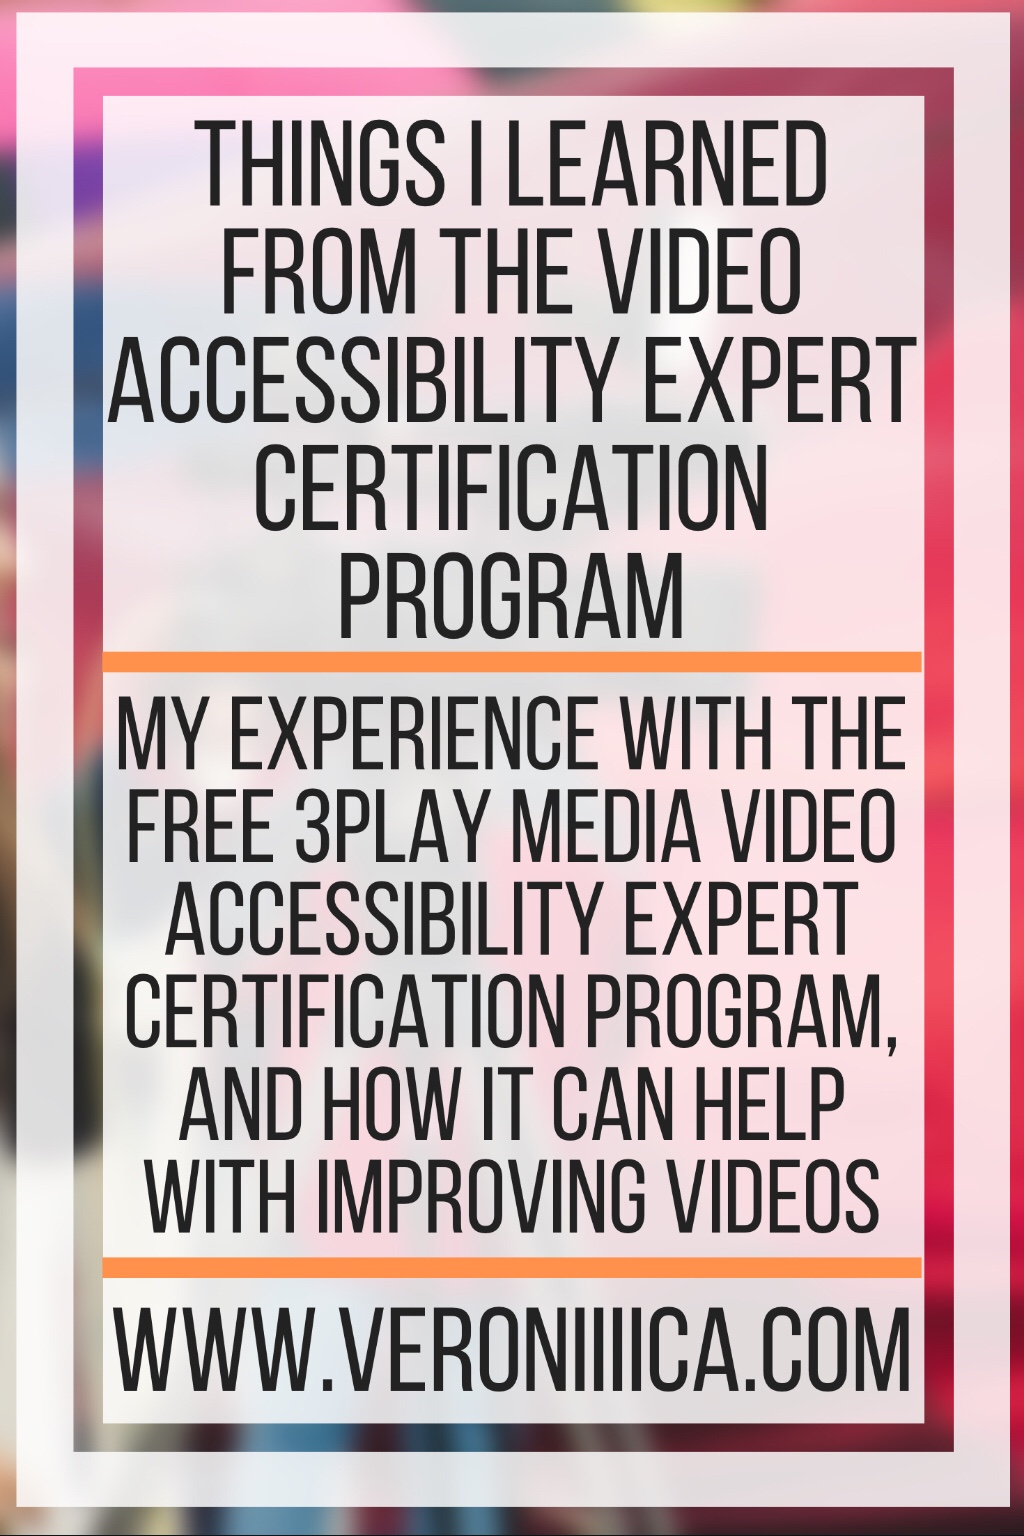 Things I Learned From The Video Accessibility Expert Certification Program. My experience with the free 3Play Media Video Accessibility Expert Certification program, and how it can help with improving videos